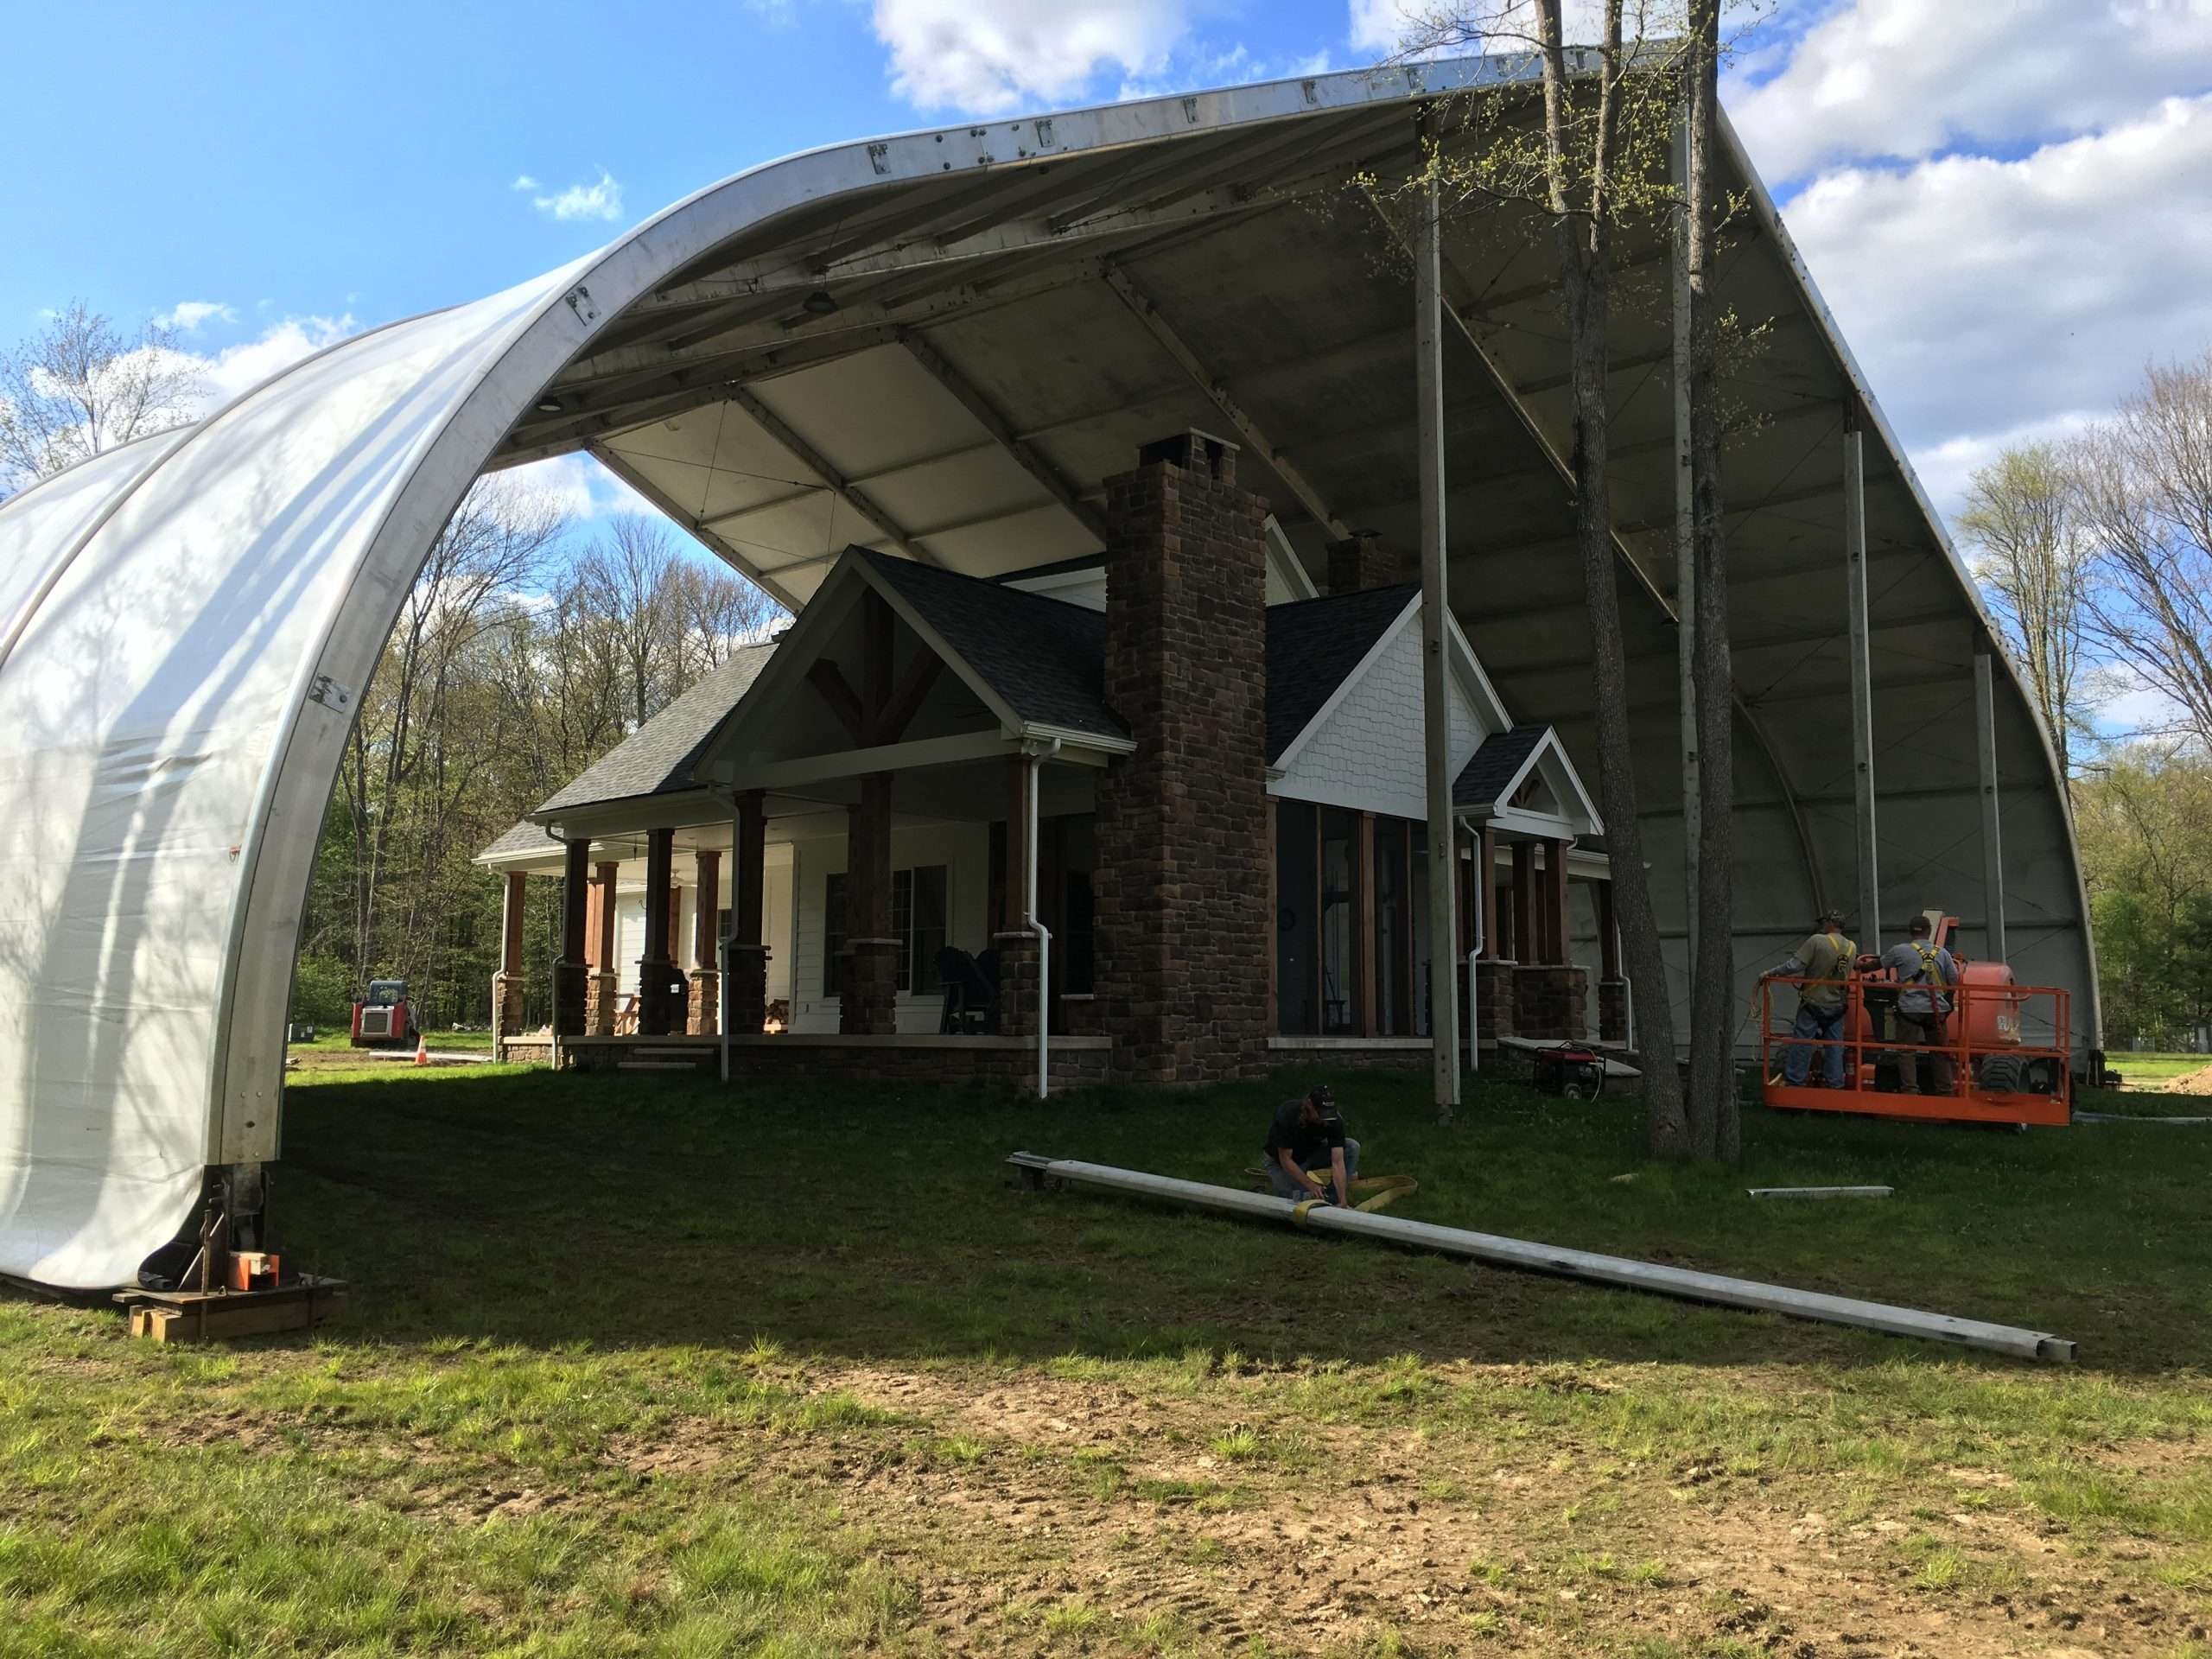 Construction shelter tension fabric structure protects large home from weather during renovation